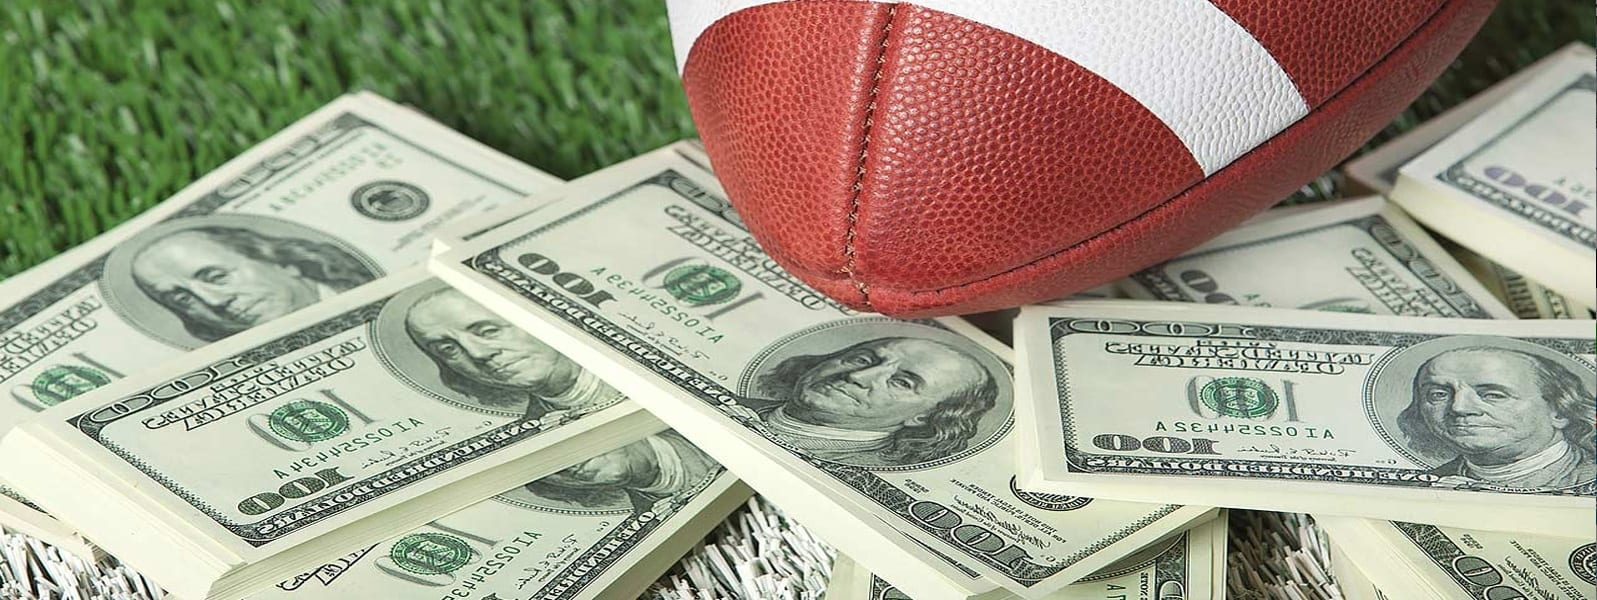 Free Picks | Free Sports & Horse Picks Every day from Predictem